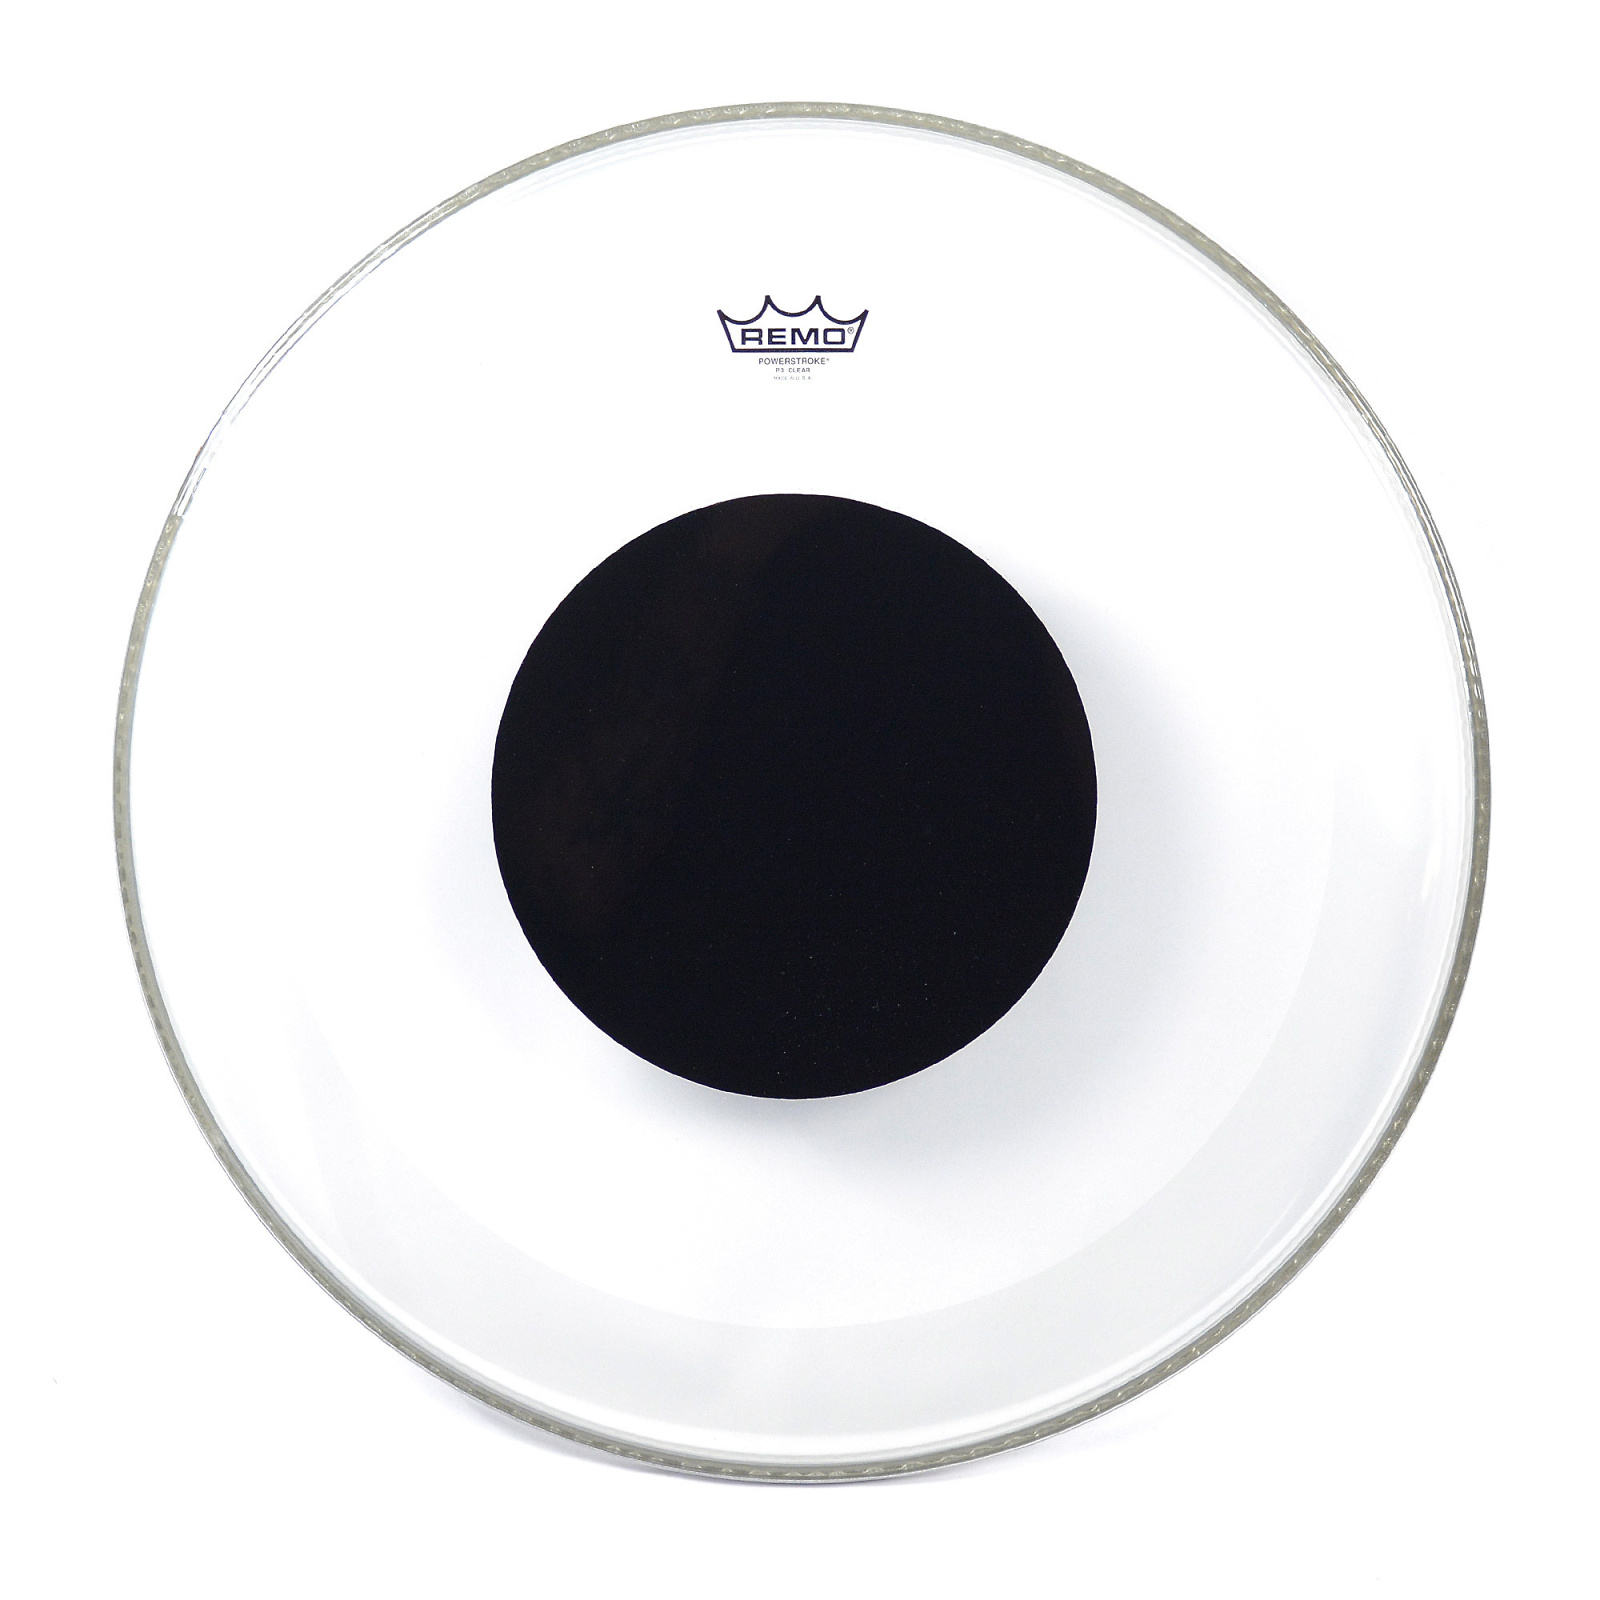 Remo Powerstroke 3 Coated Bass Drum Head with Black Dot 22in